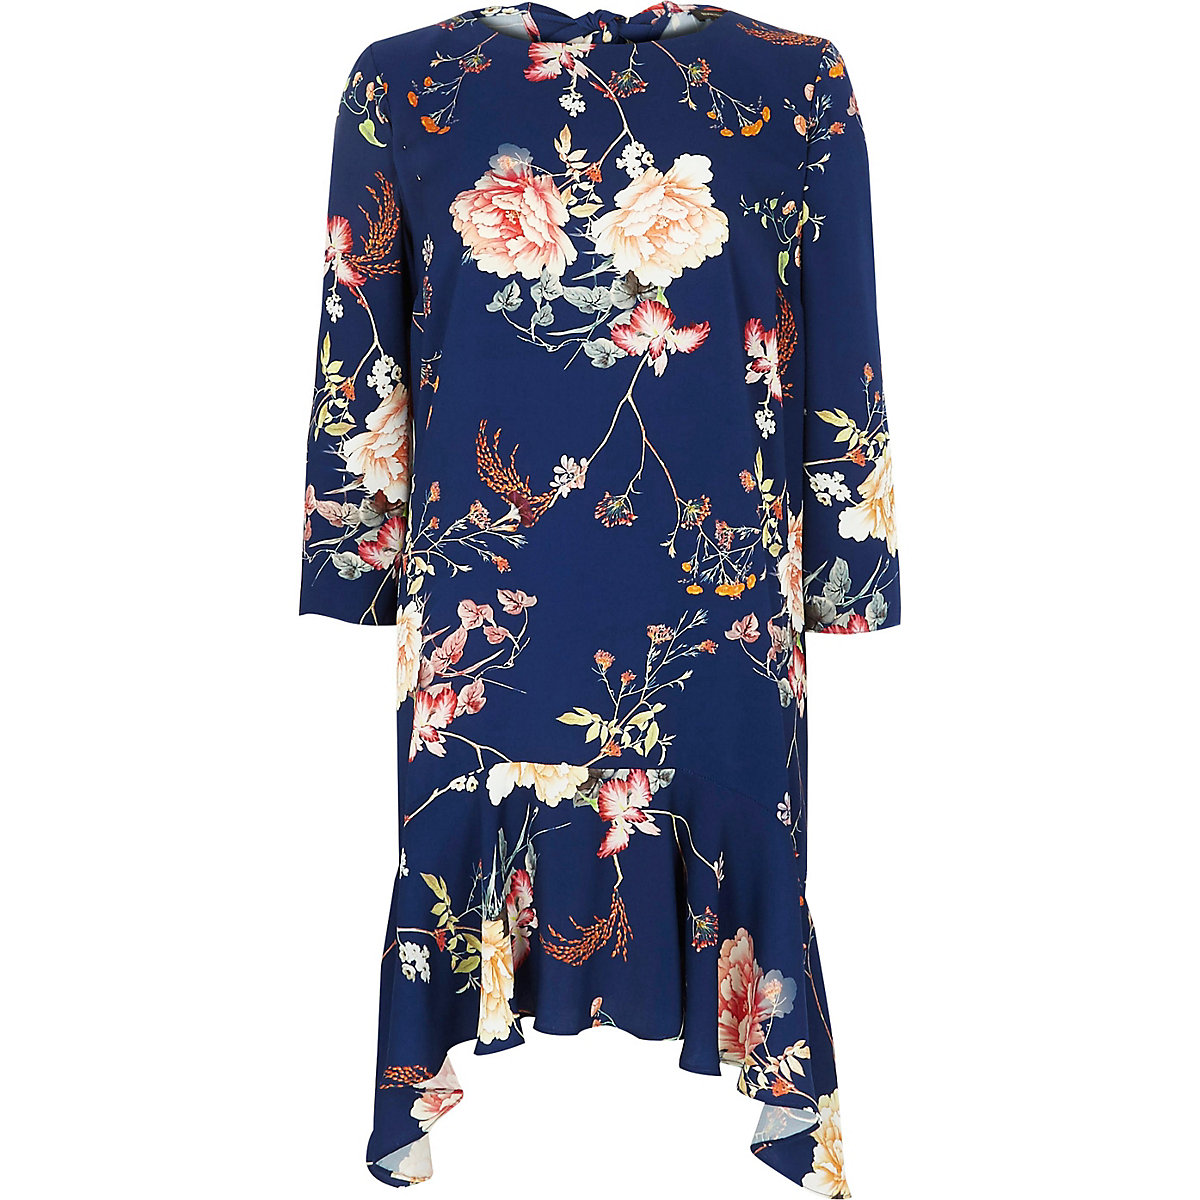 Blue floral curved frill hem swing dress